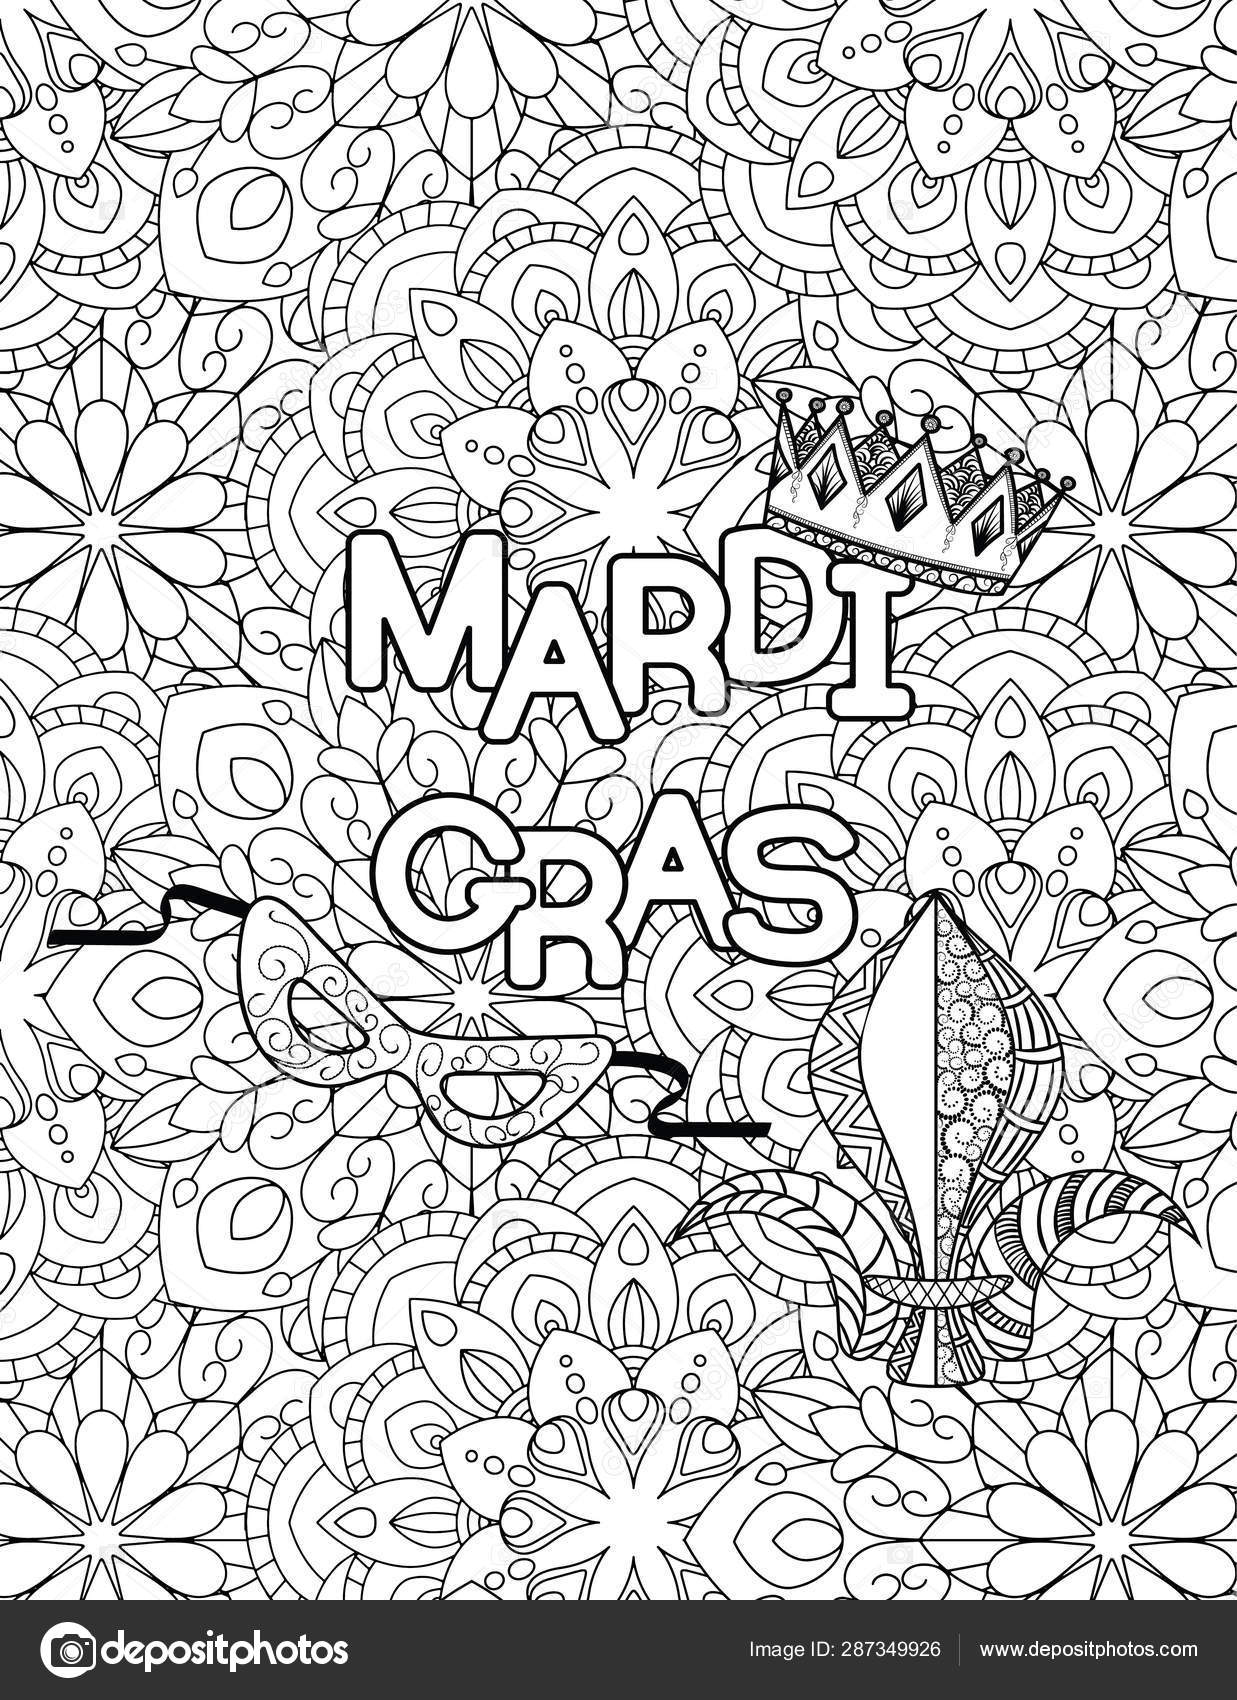 7 Top Places to Find Free Mardi Gras Coloring Pages | 1700x1237